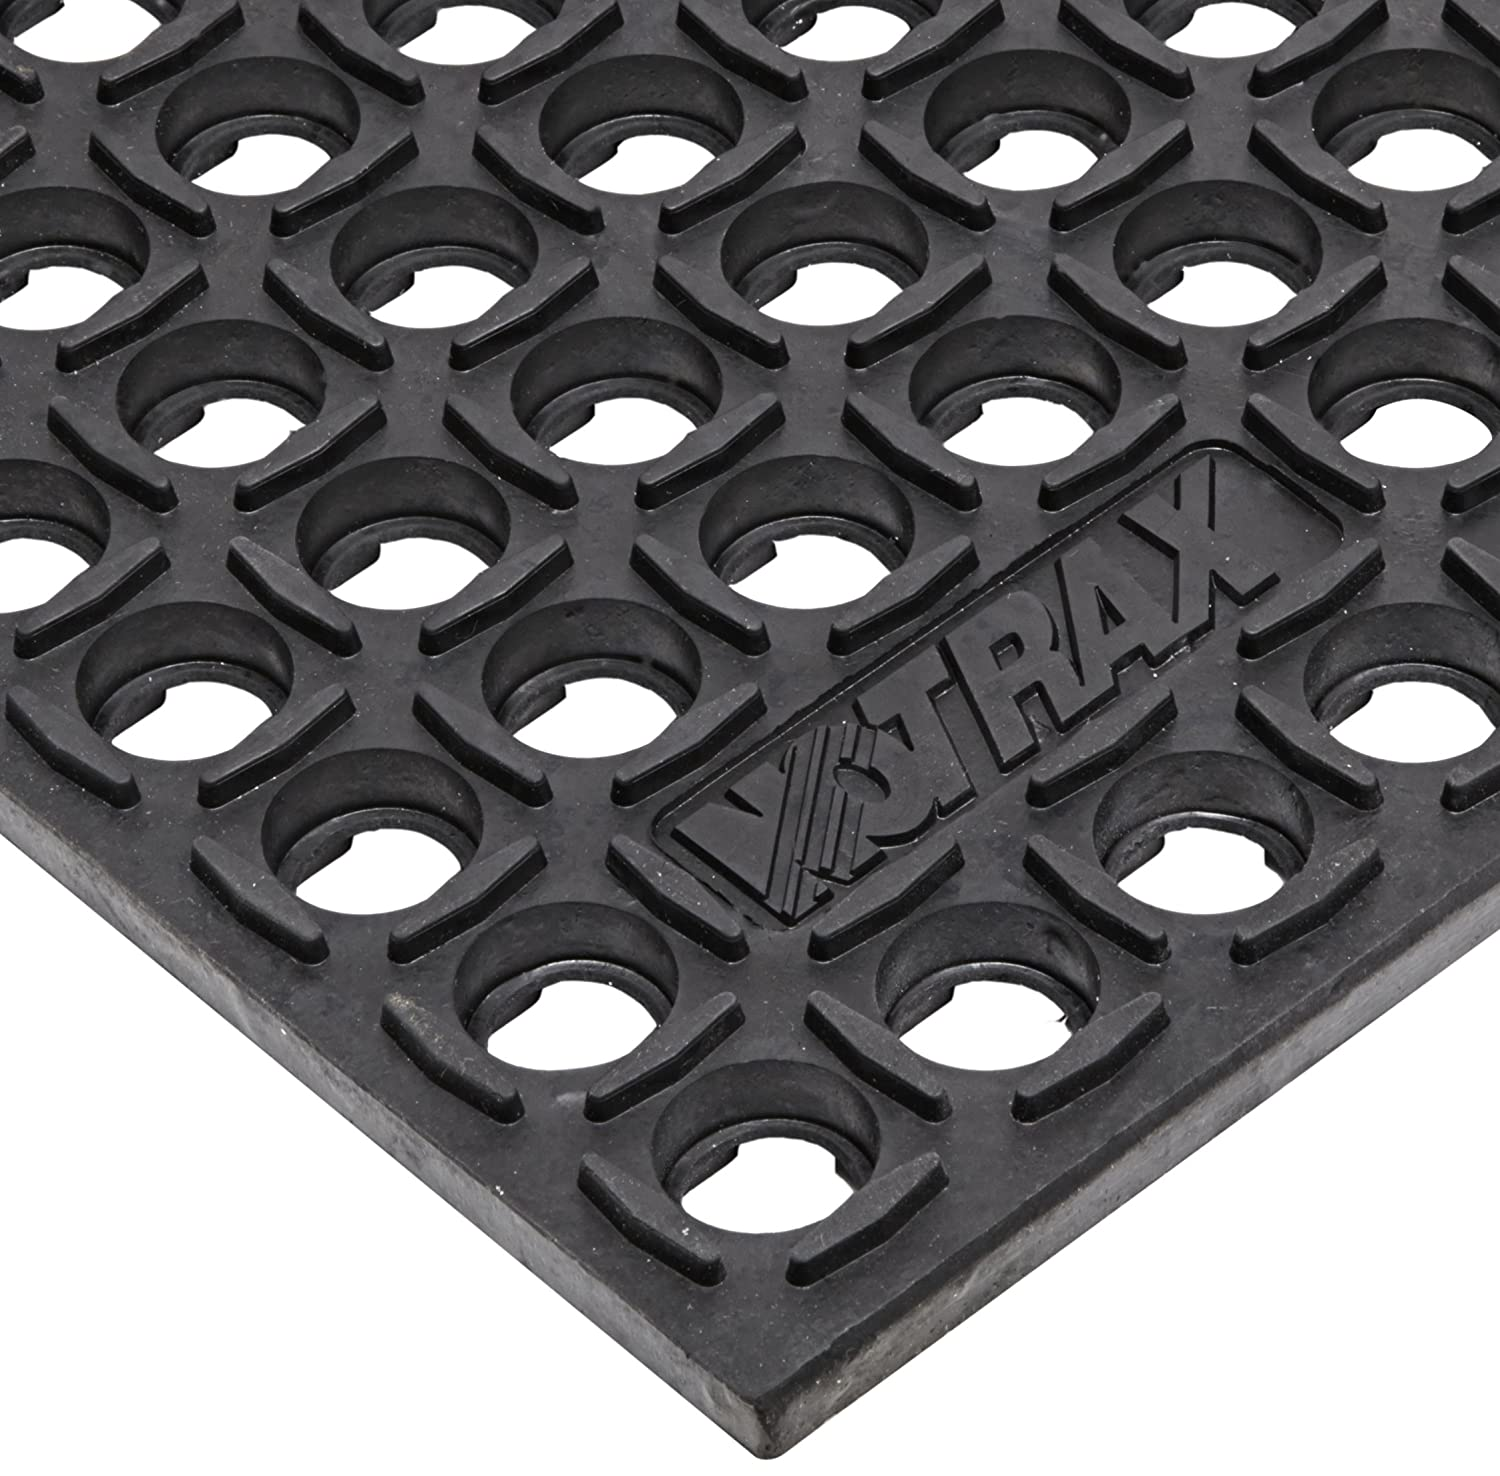 Popular Directly managed store product NoTrax 543S0023BL 543 Cushion-Tred 2' 3' Safety x Black Anti-Fat